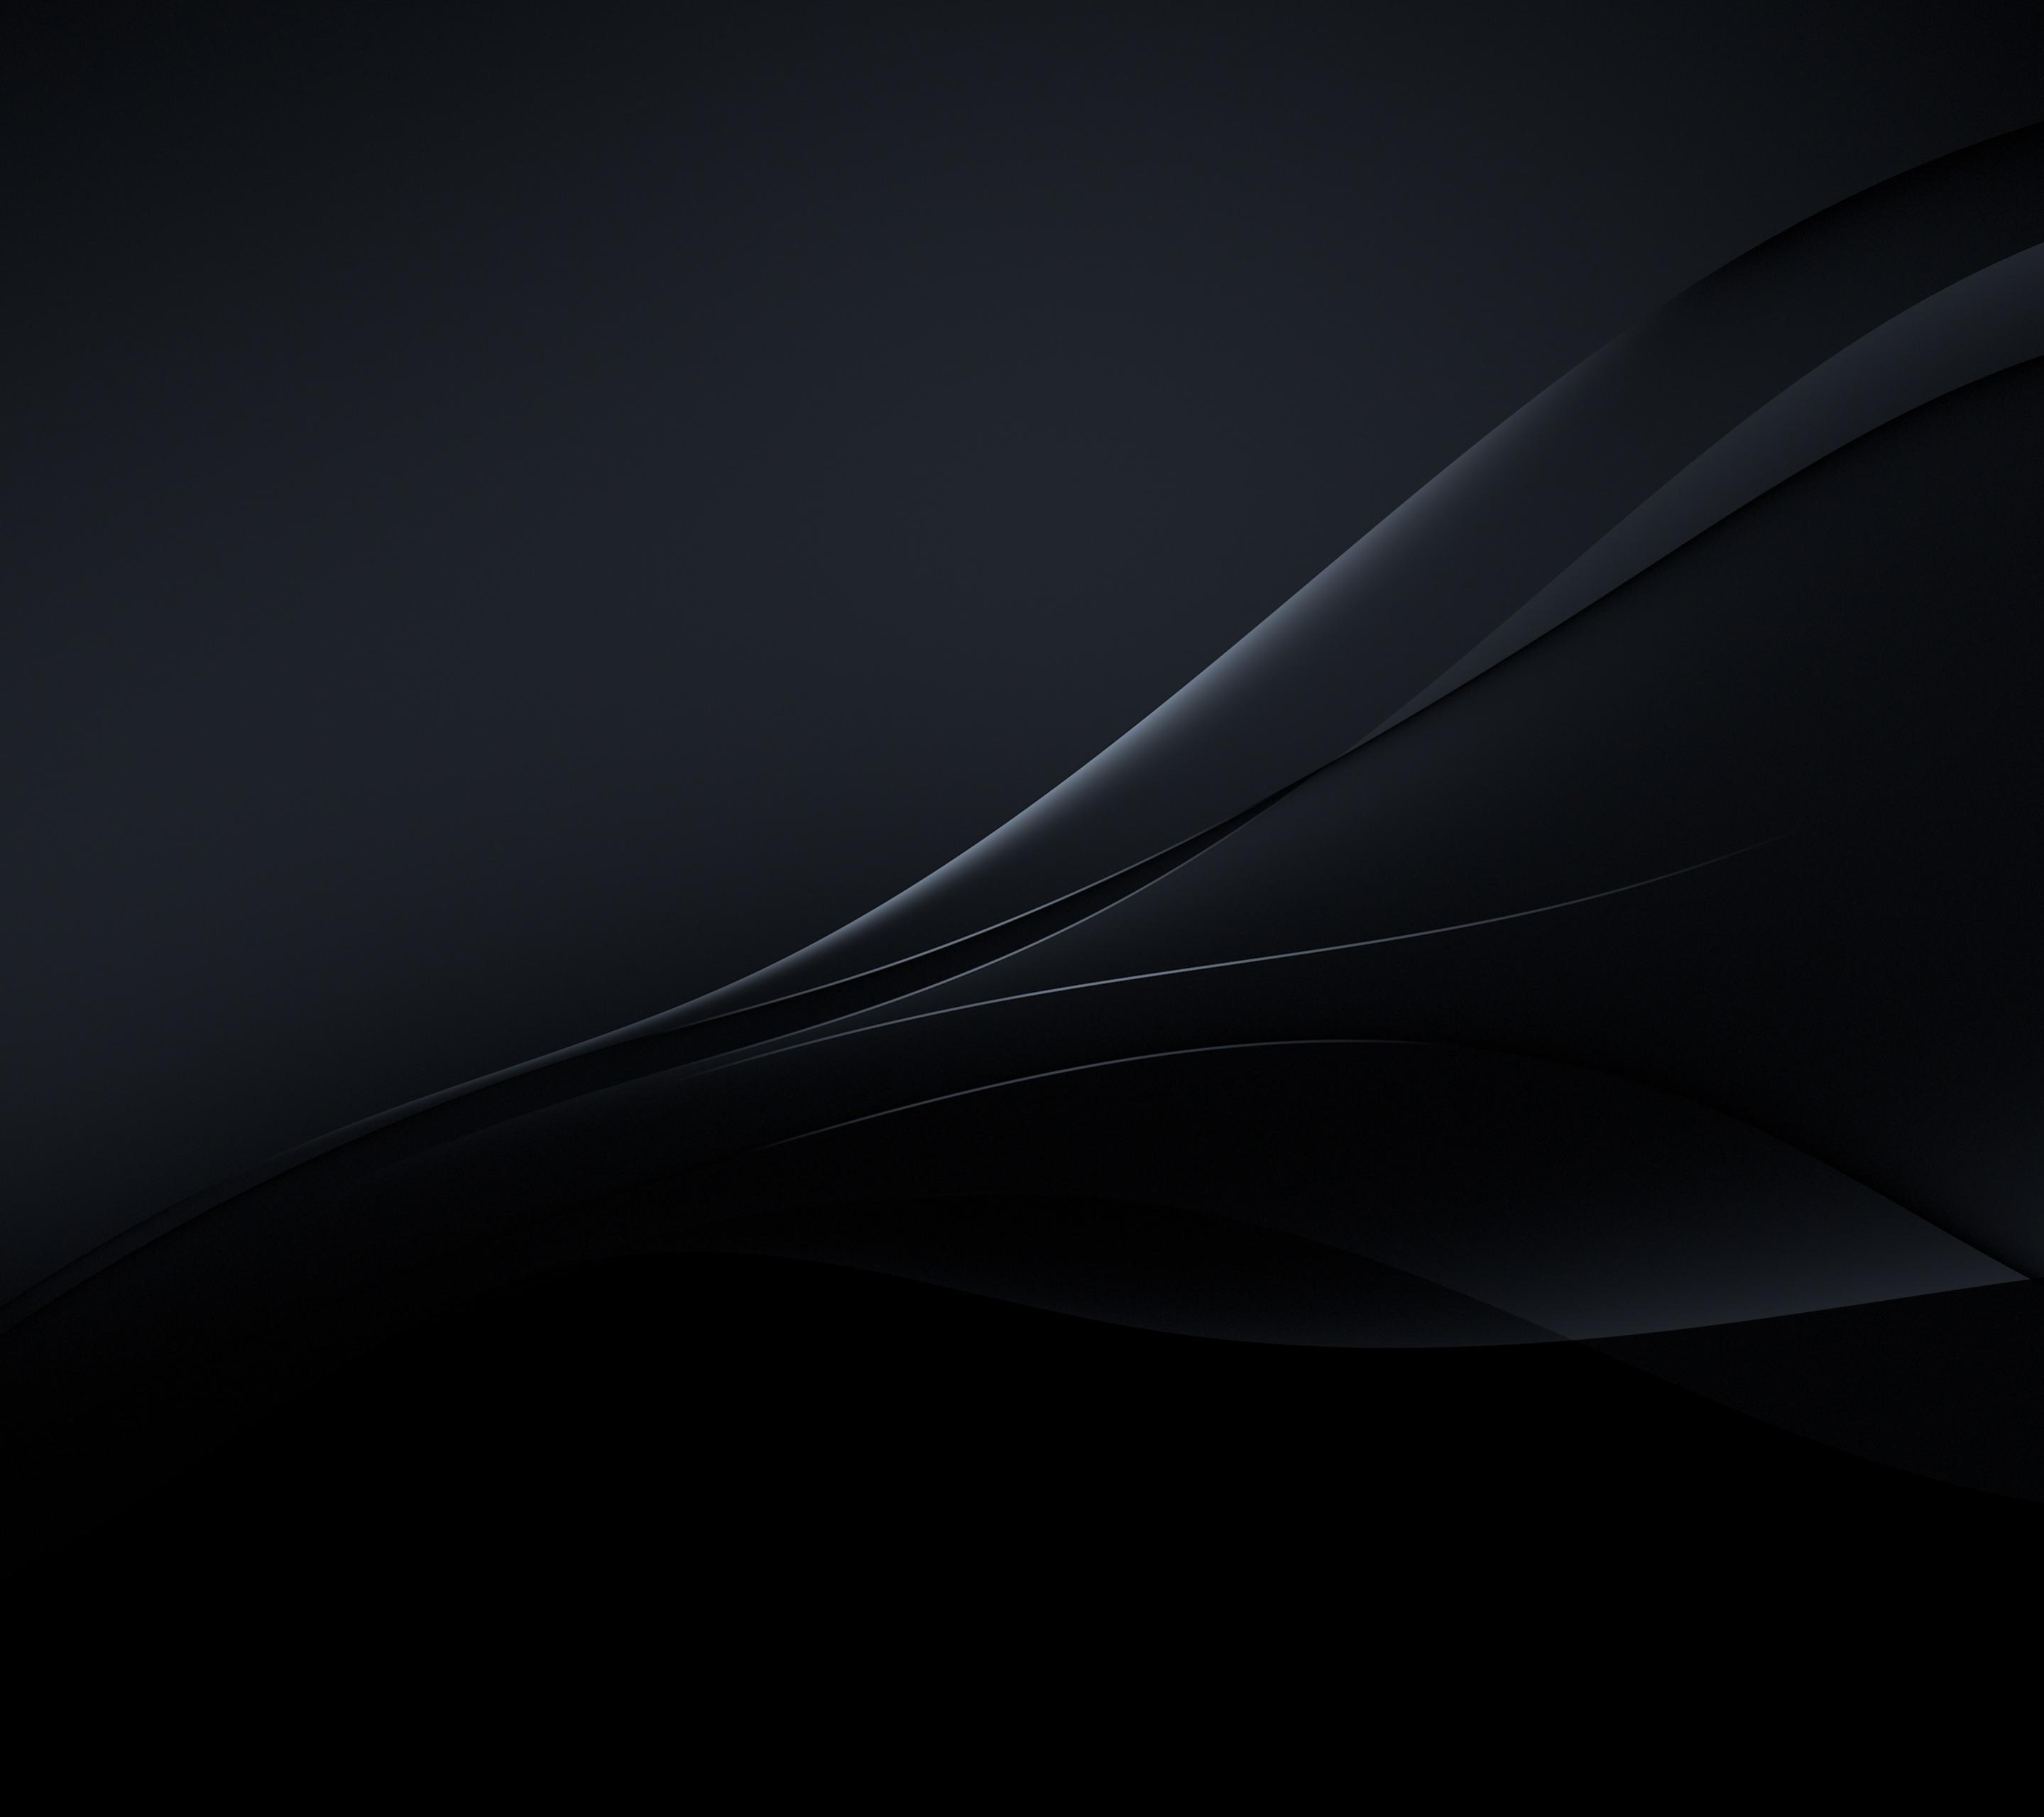 Xperia Black Wallpapers Wallpaper Cave